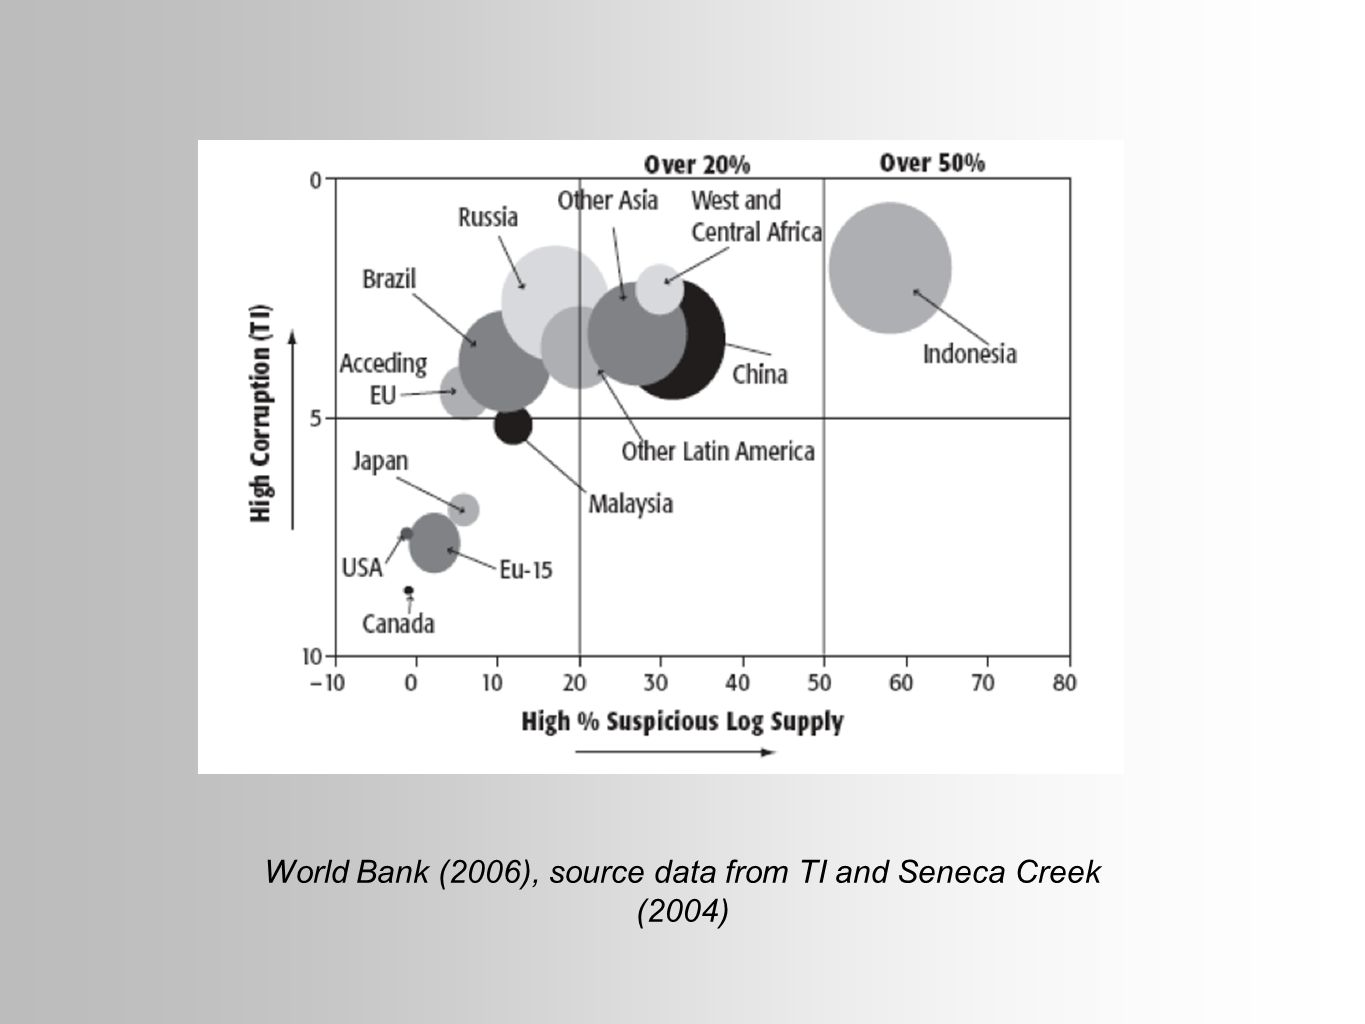 World Bank (2006), source data from TI and Seneca Creek (2004)